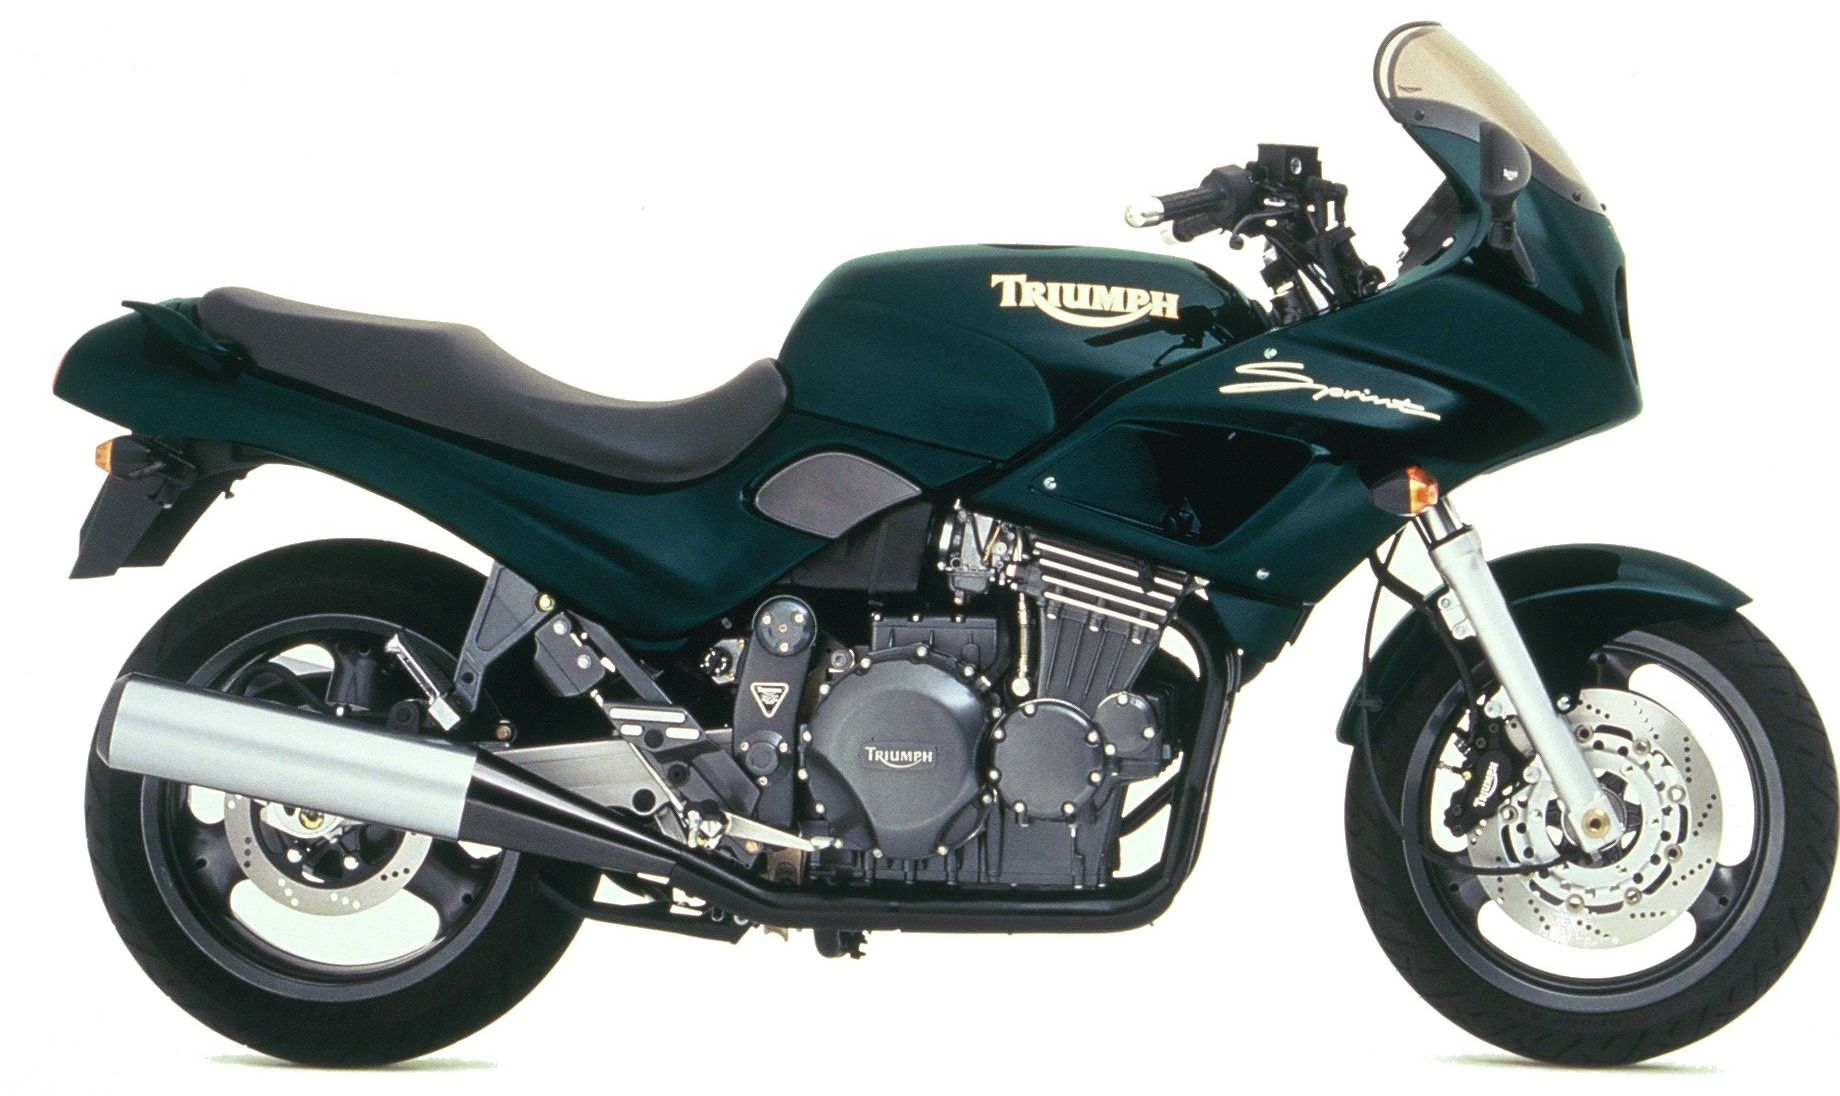 Triumph Trident 750 1993 wallpapers #129851